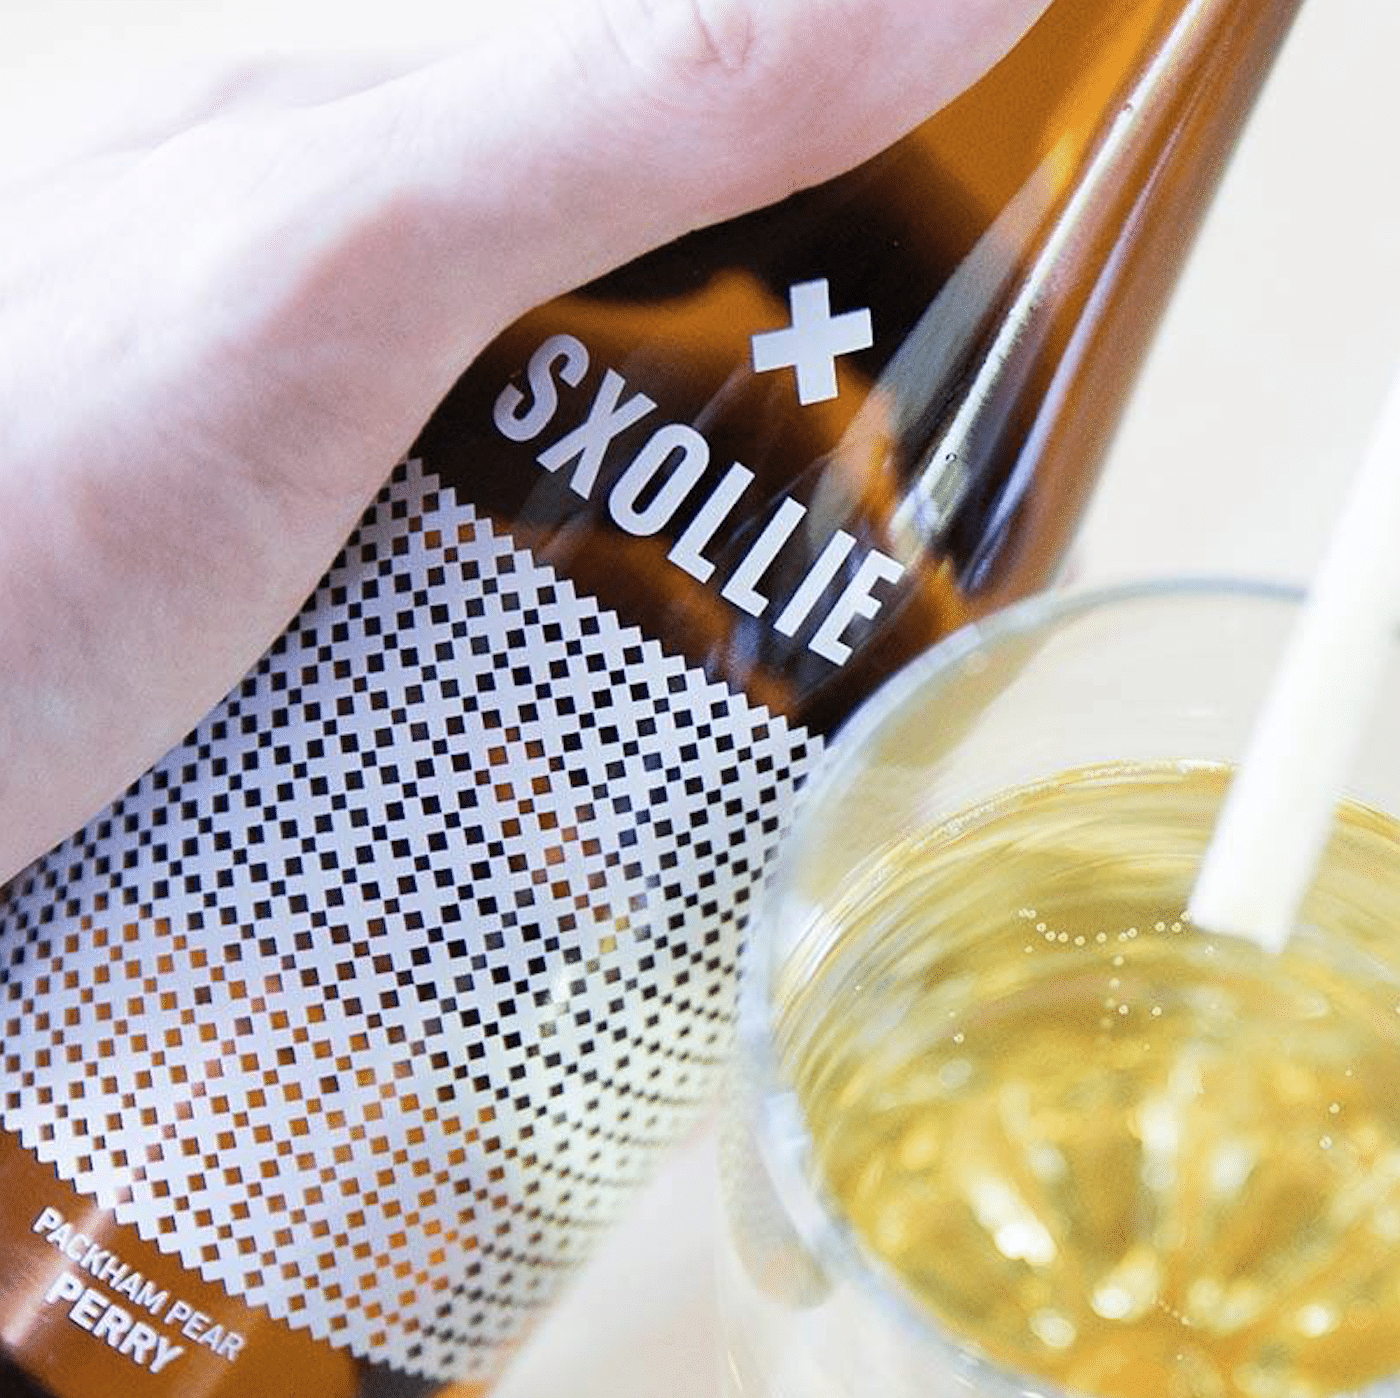 sxollie hard cider certified paleo friendly by the paleo foundation